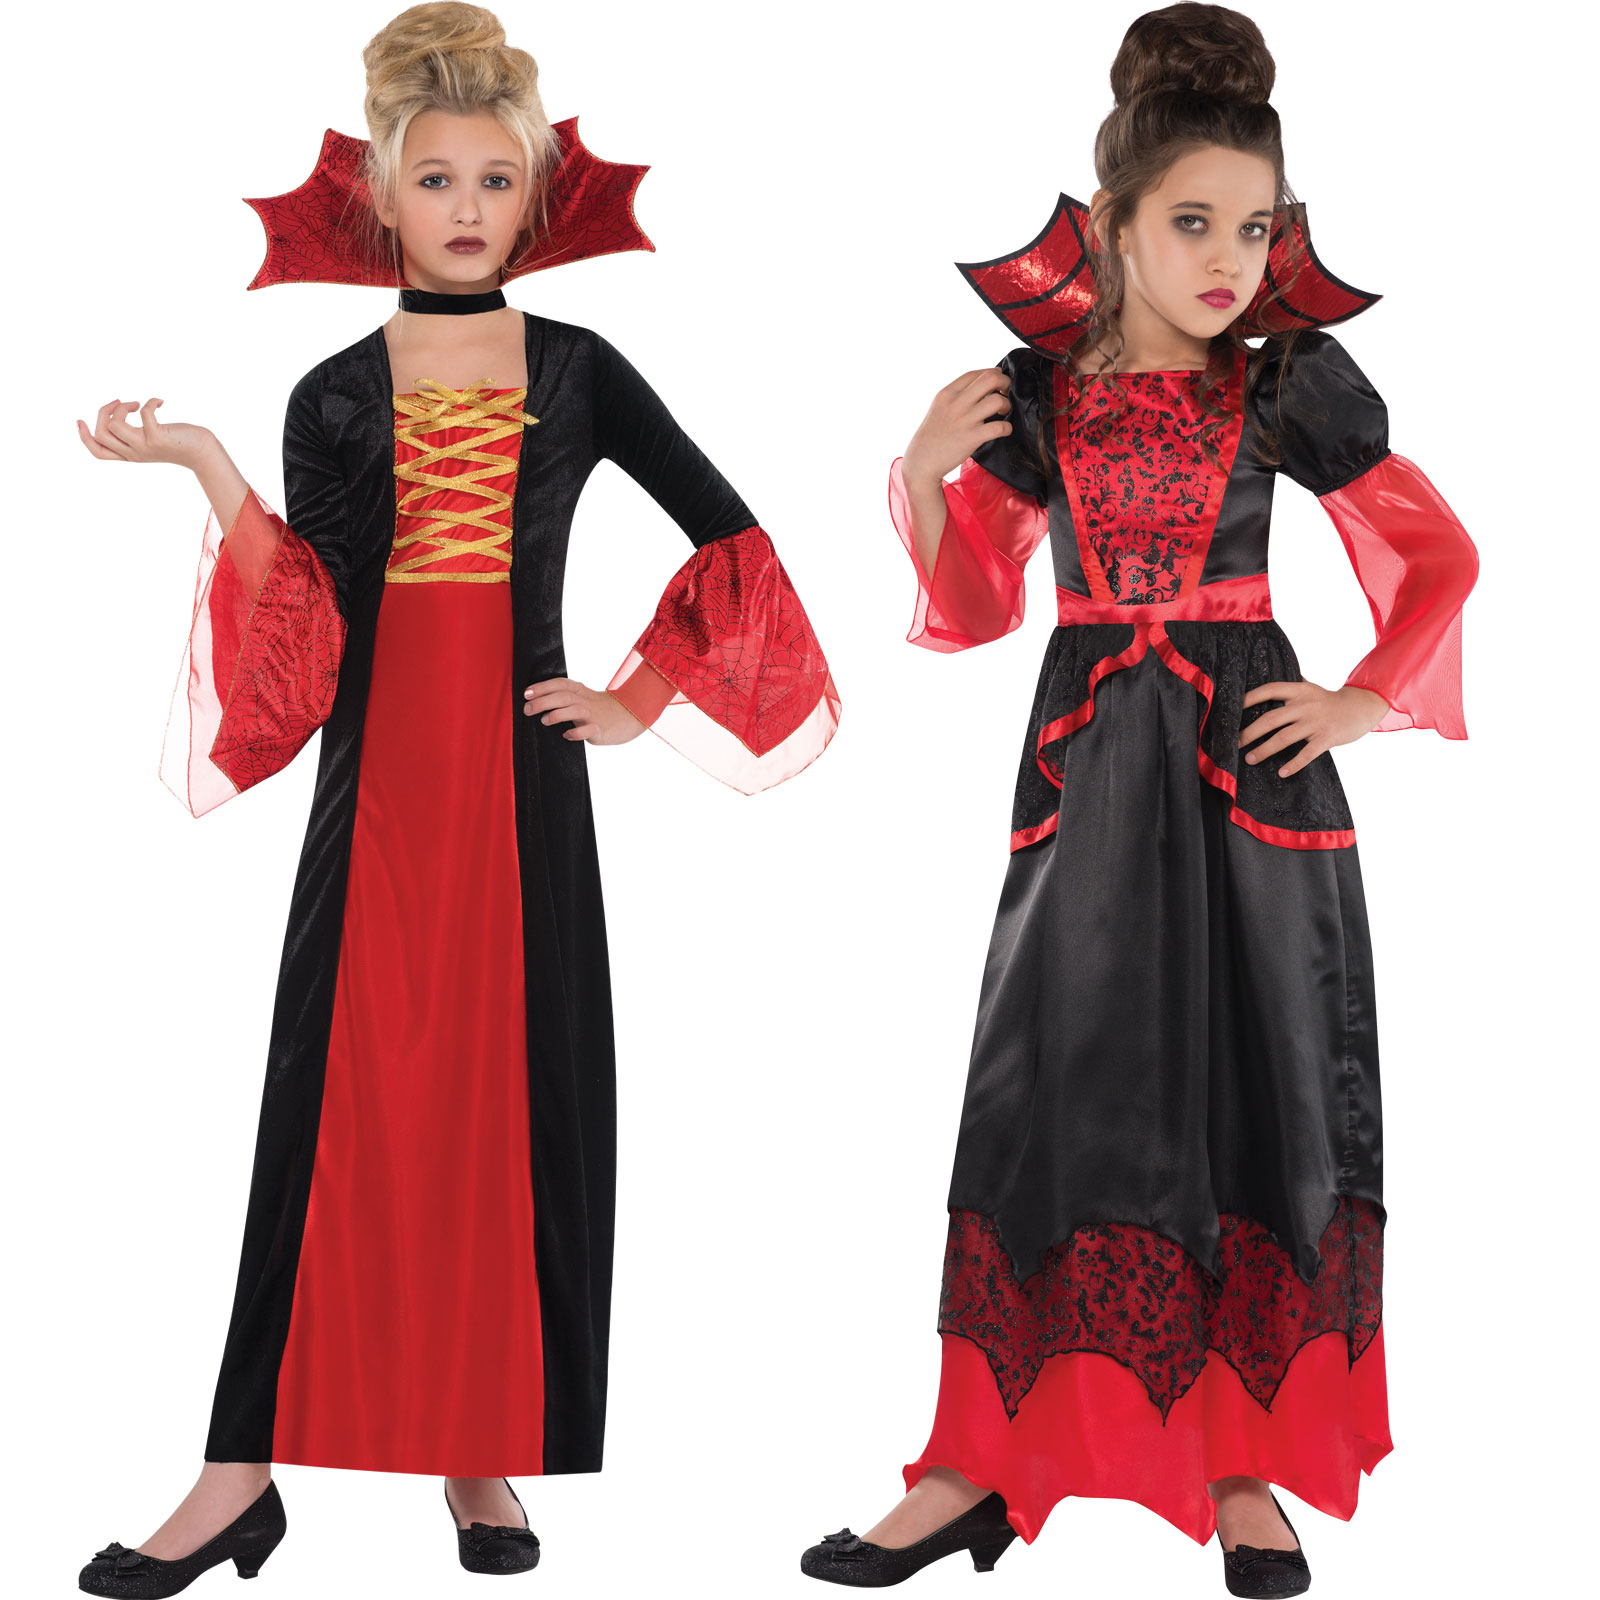 Halloween Vampire Costume Kids.Details About Girls Halloween Vampire Queen Gothic Princess Costumes Kids Fancy Dress